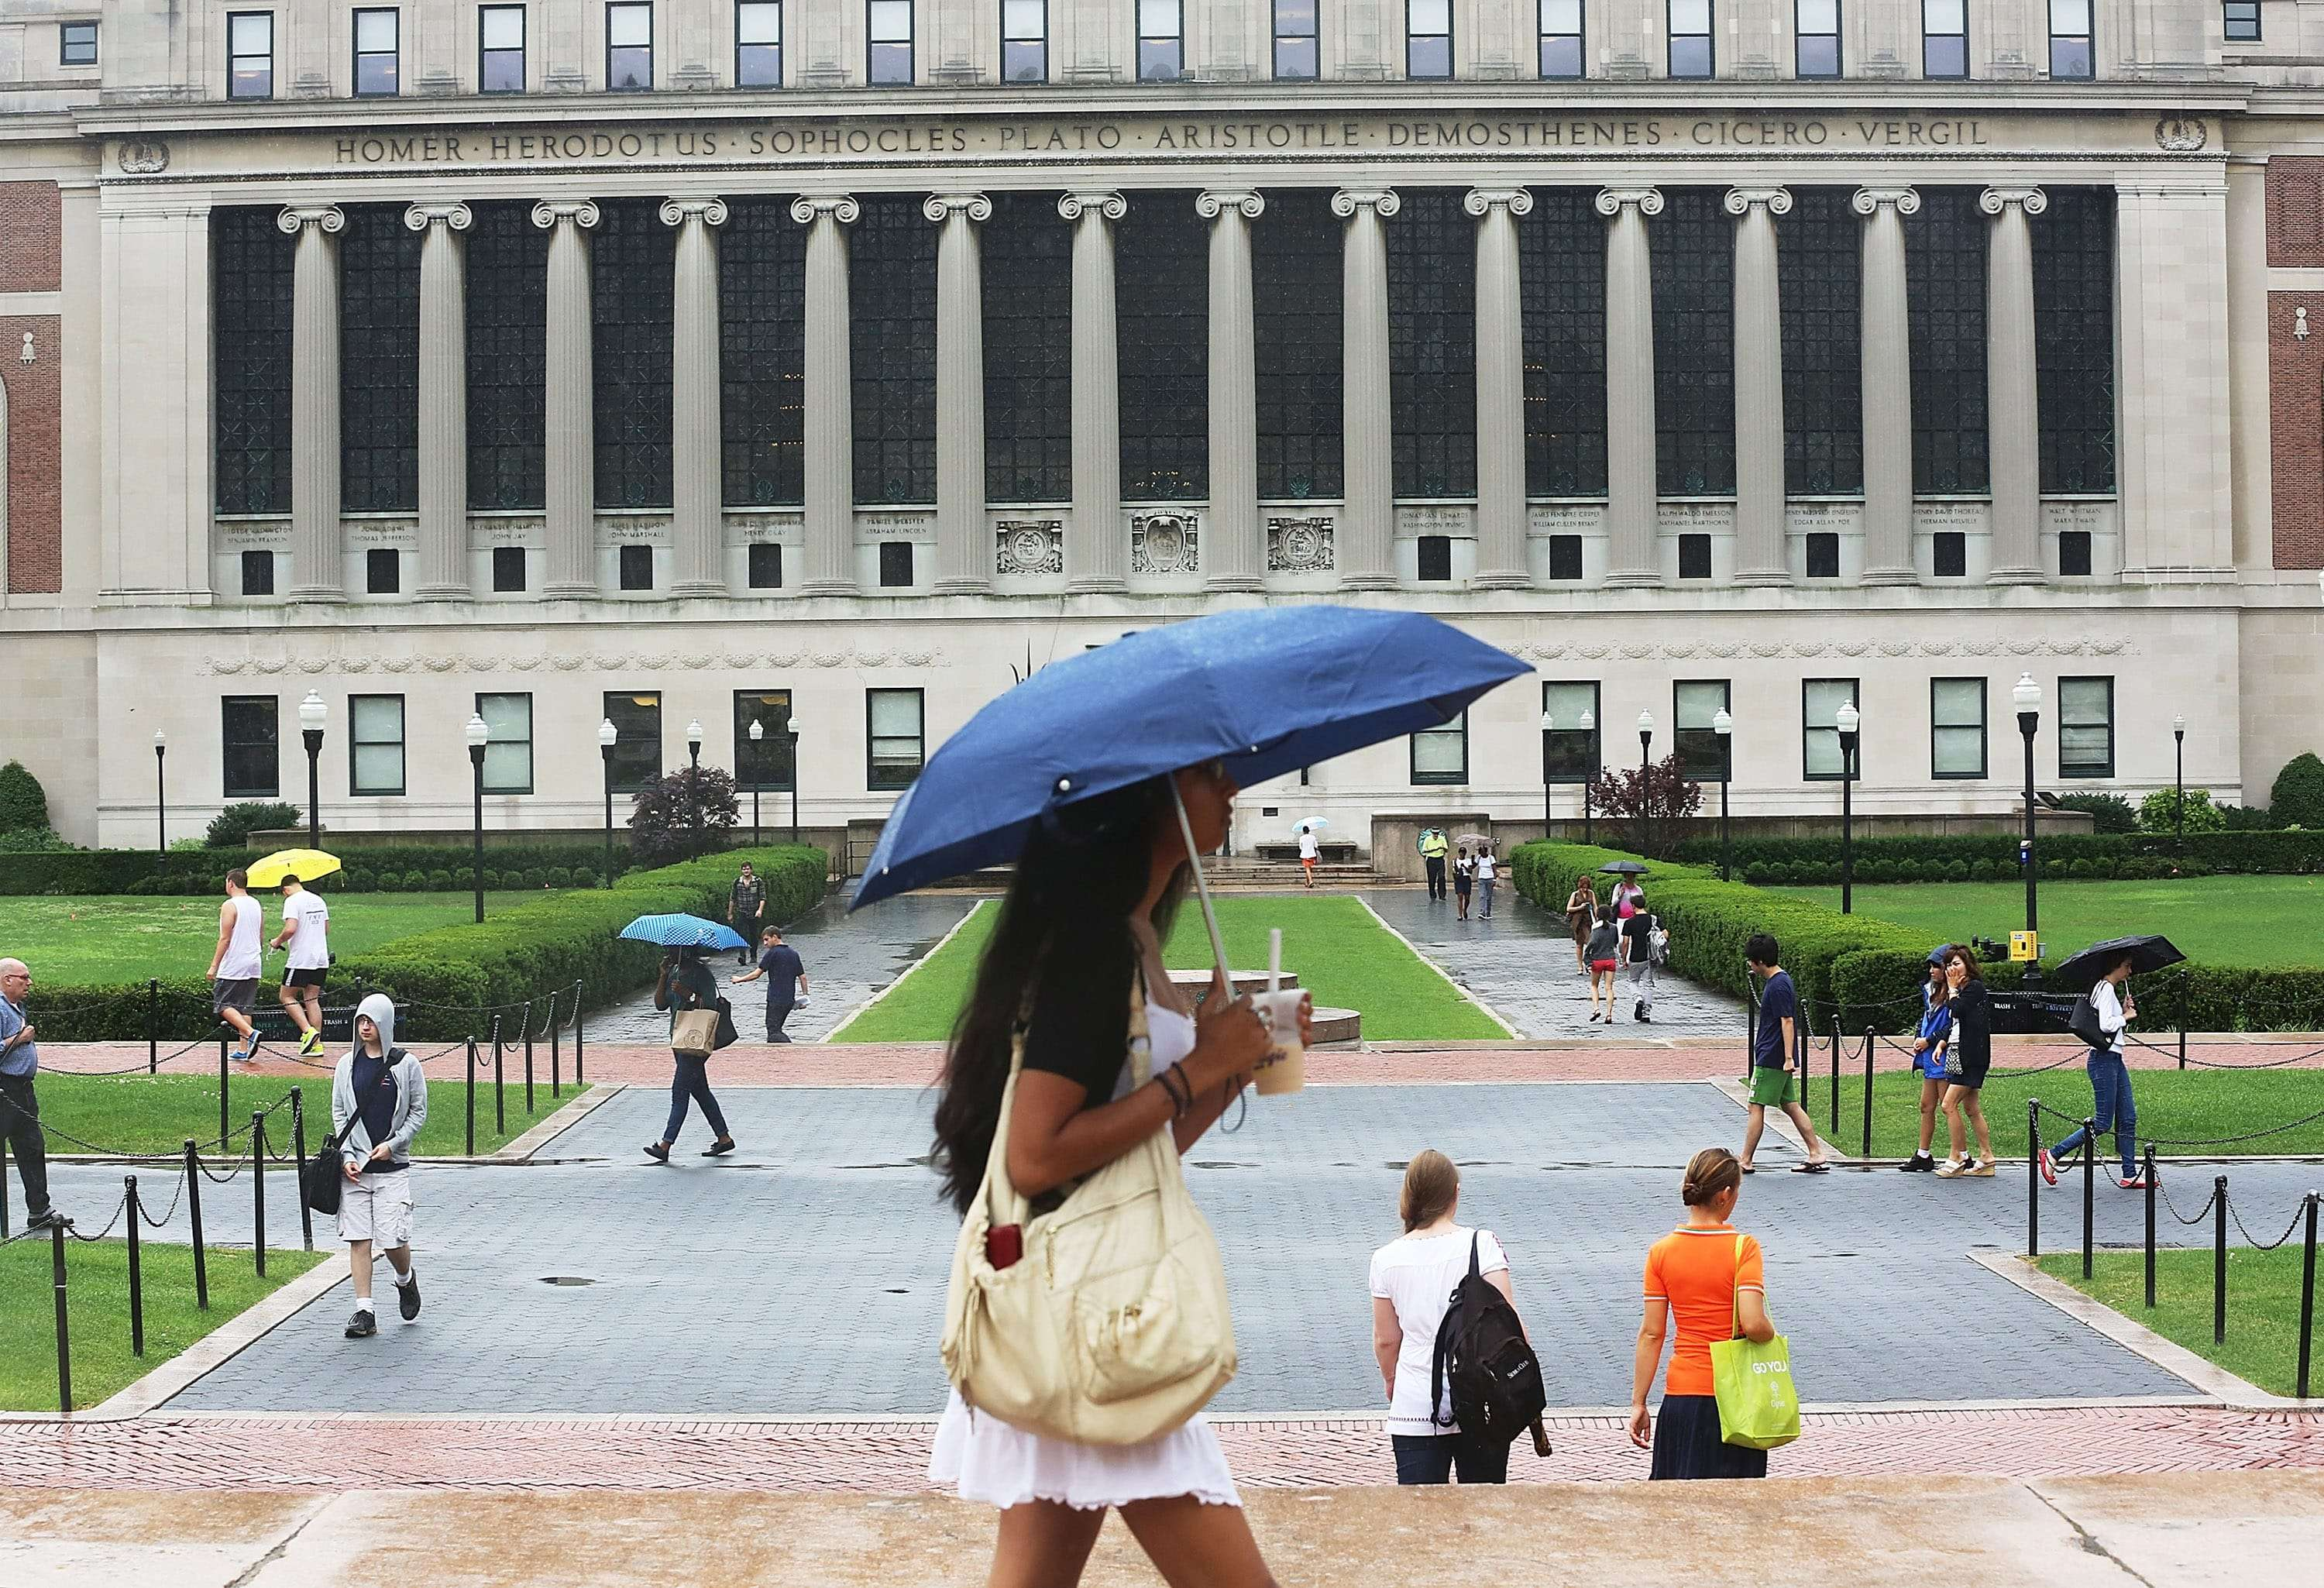 People walk on the Columbia University campus in 2013 in New York City. (Mario Tama/Getty Images)